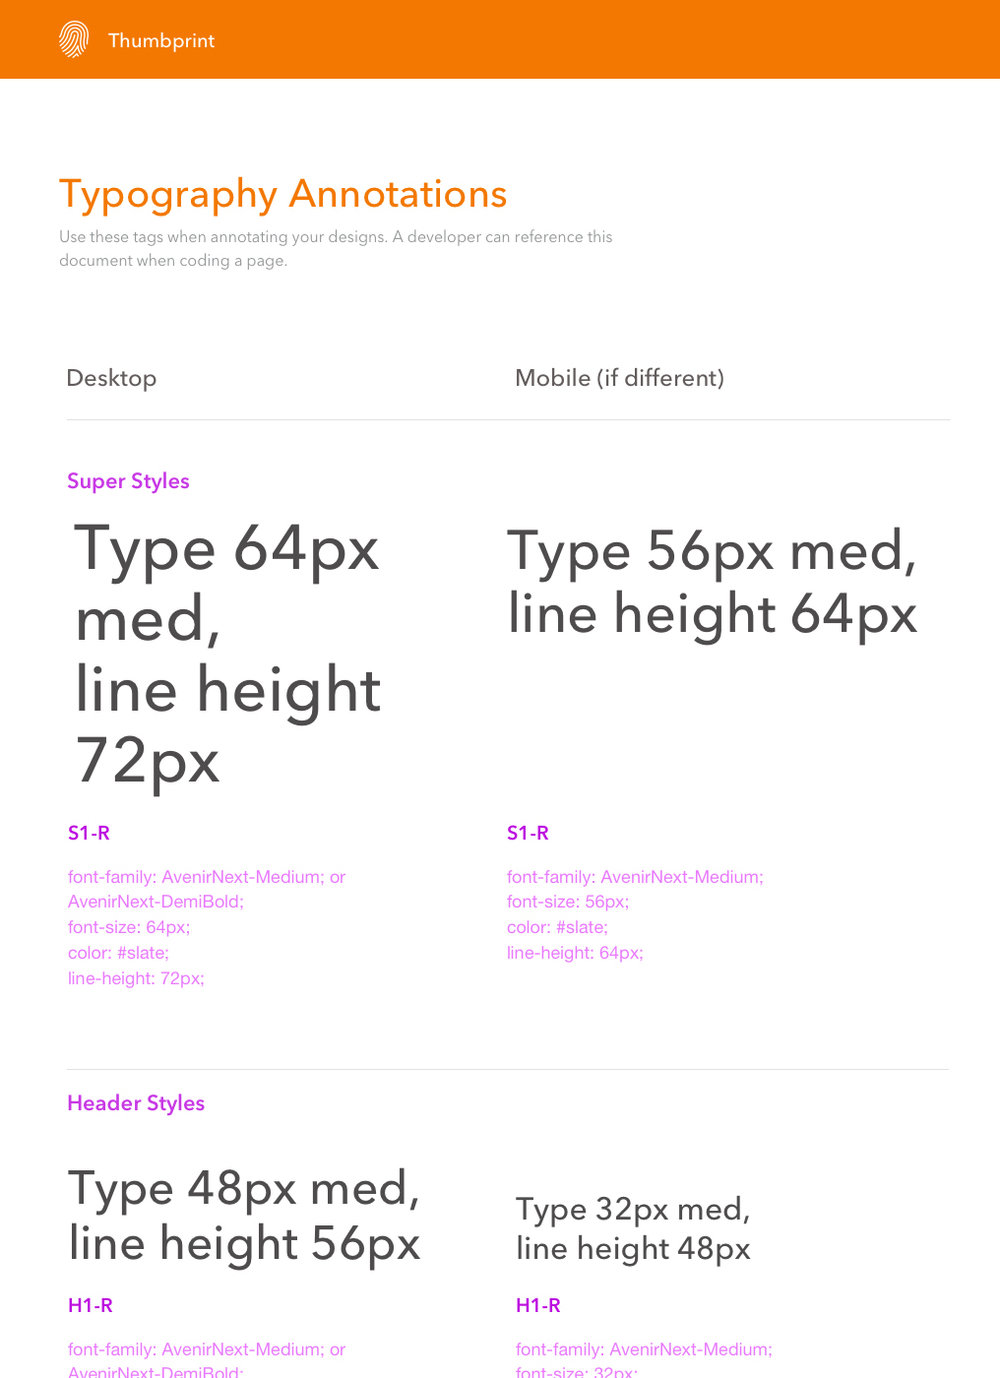 styleguide_elements_0003_Typography Annotations_1.jpg